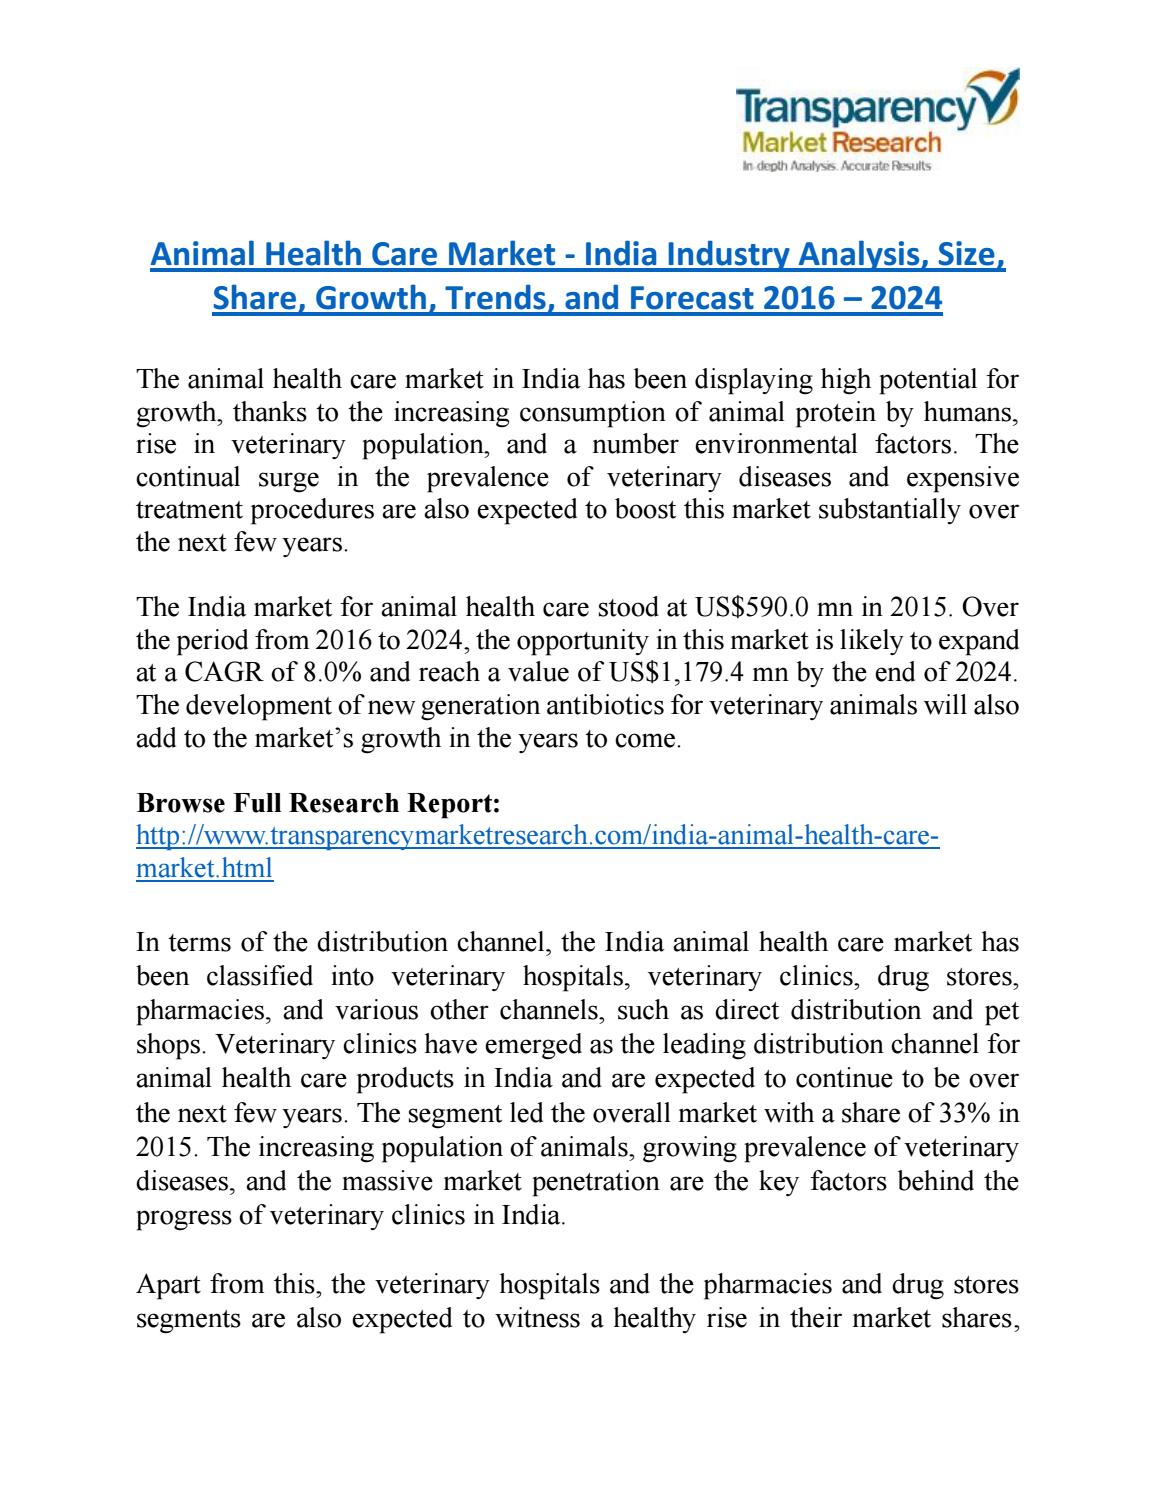 pfizer inc animal health products market segmentation and industry changes Pfizer entered the animal health industry in the early 1950's today, pfizer animal health products are sold to veterinarians, livestock producers, and horse and pet owners in more than 140 countries around the world and used in more than 30 species.